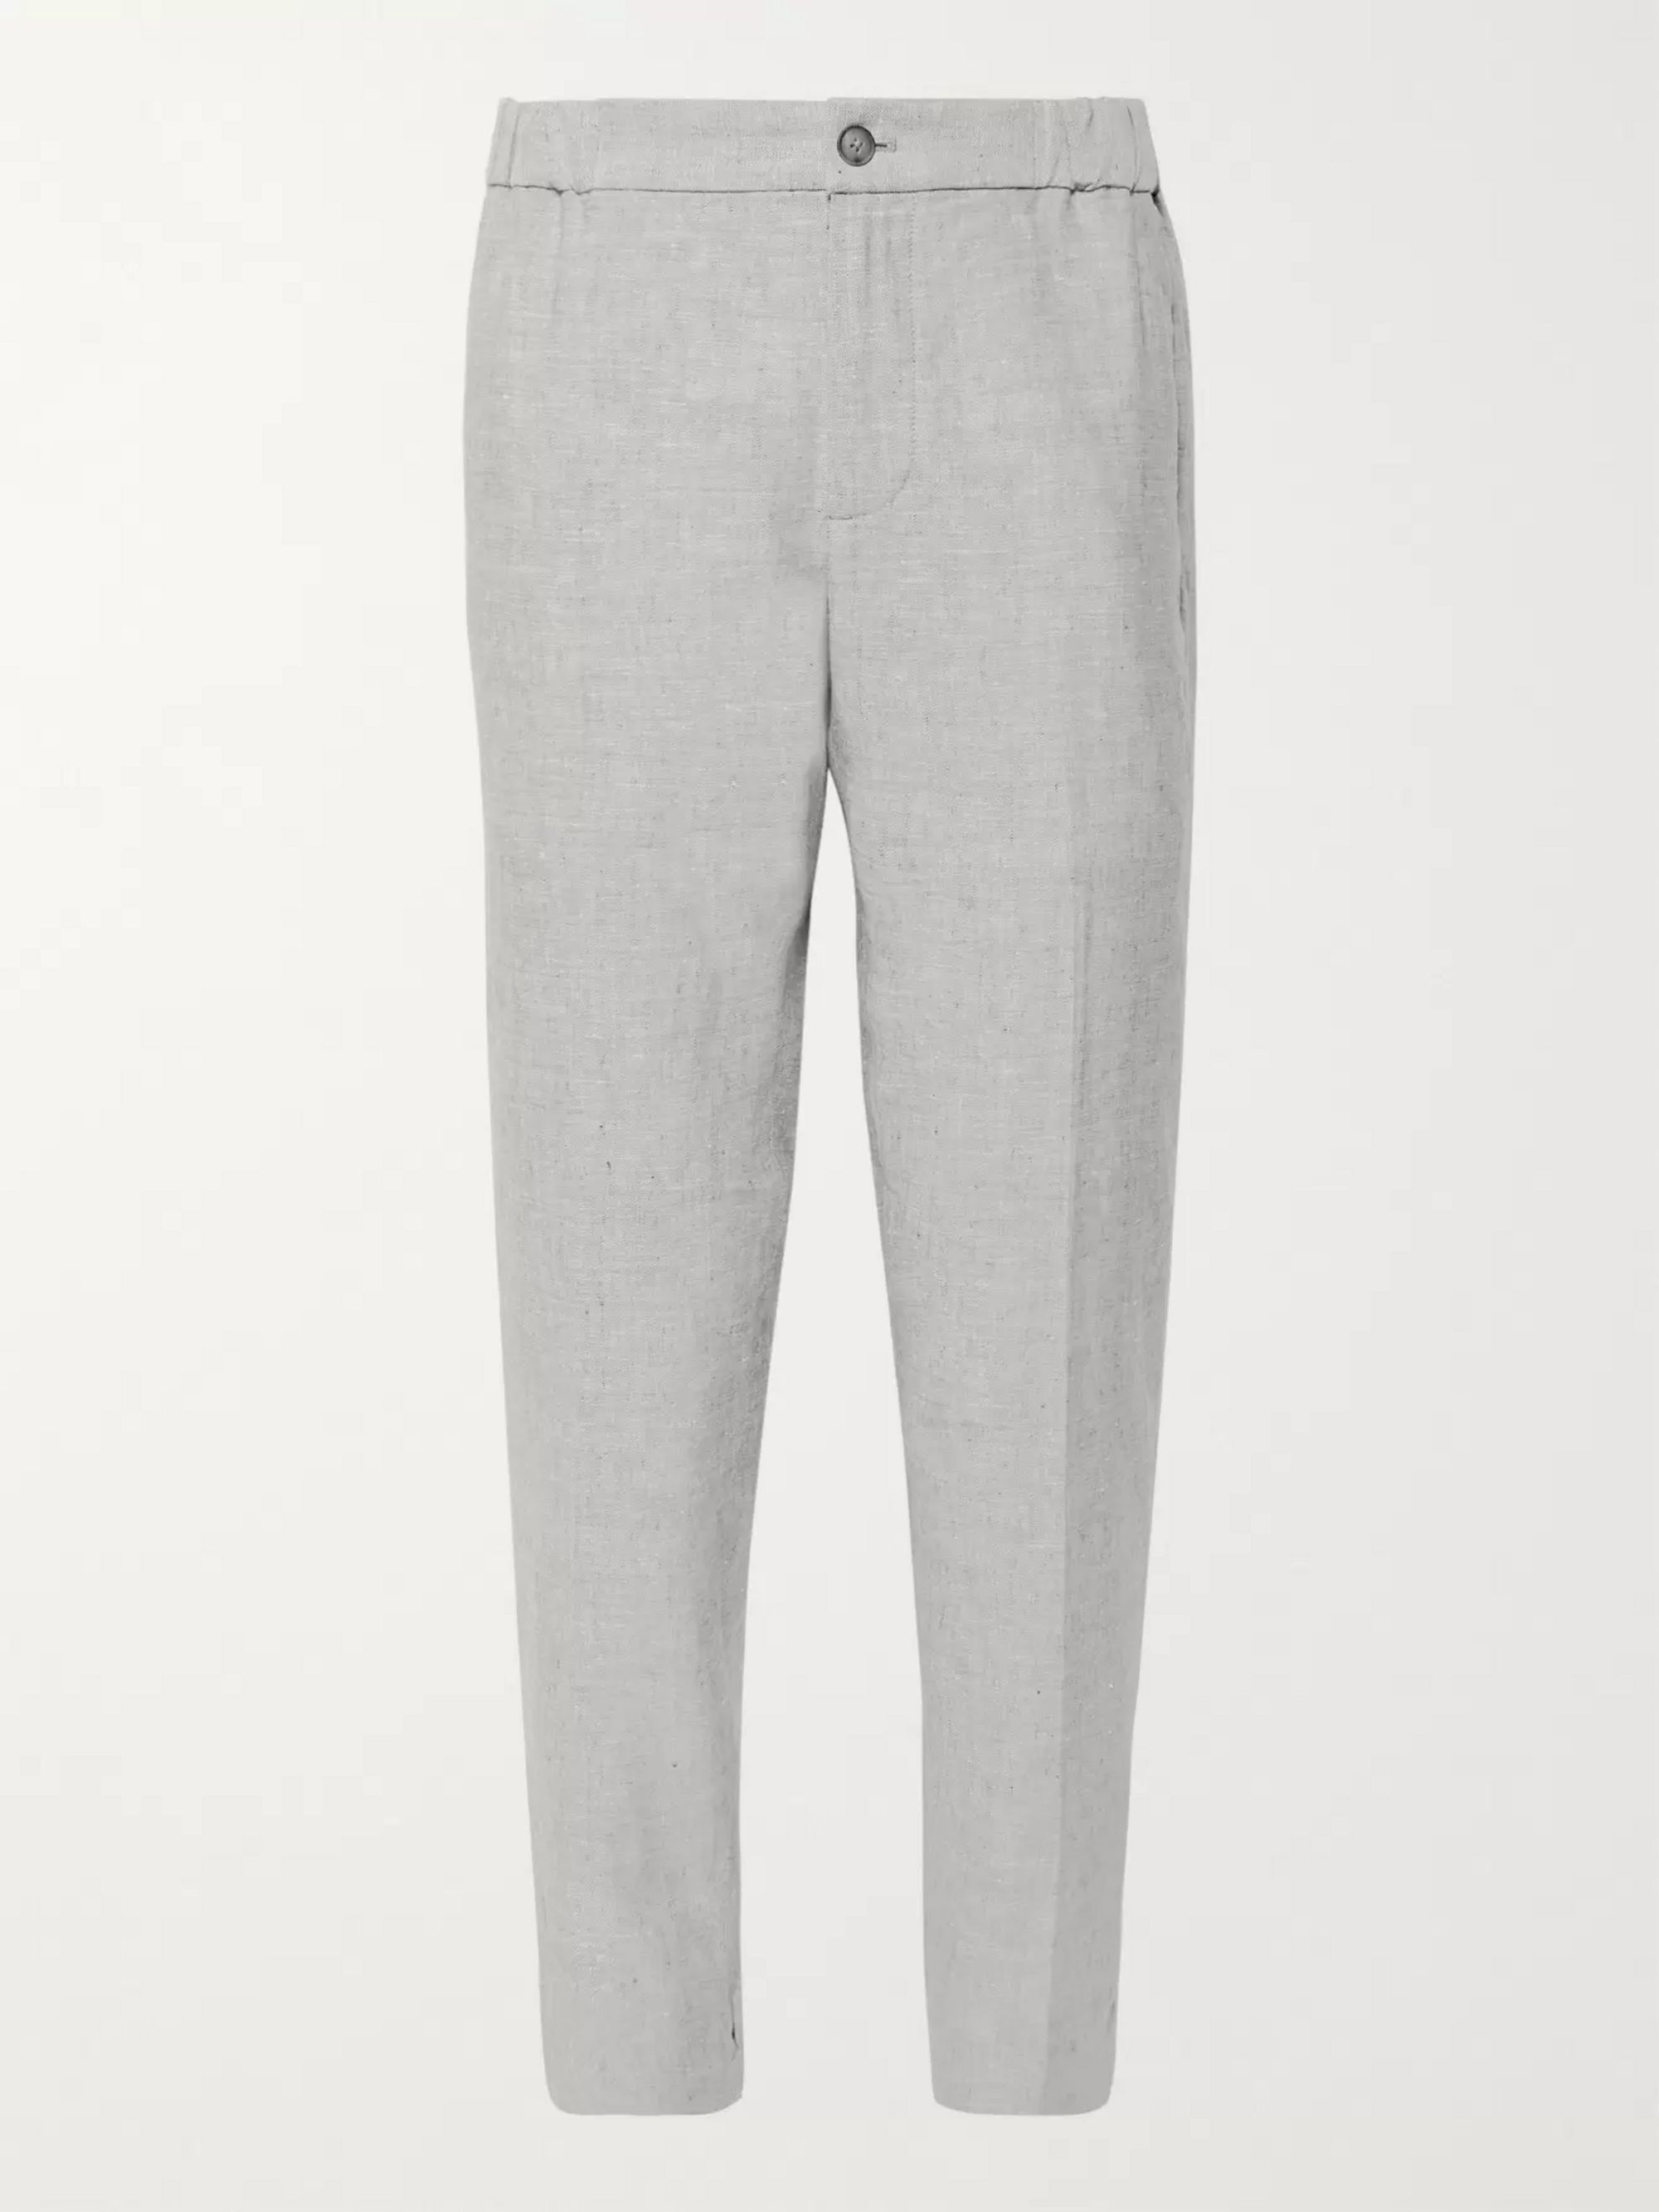 Club Monaco Lex Slim-Fit Tapered Mélange Slub Linen-Blend Trousers